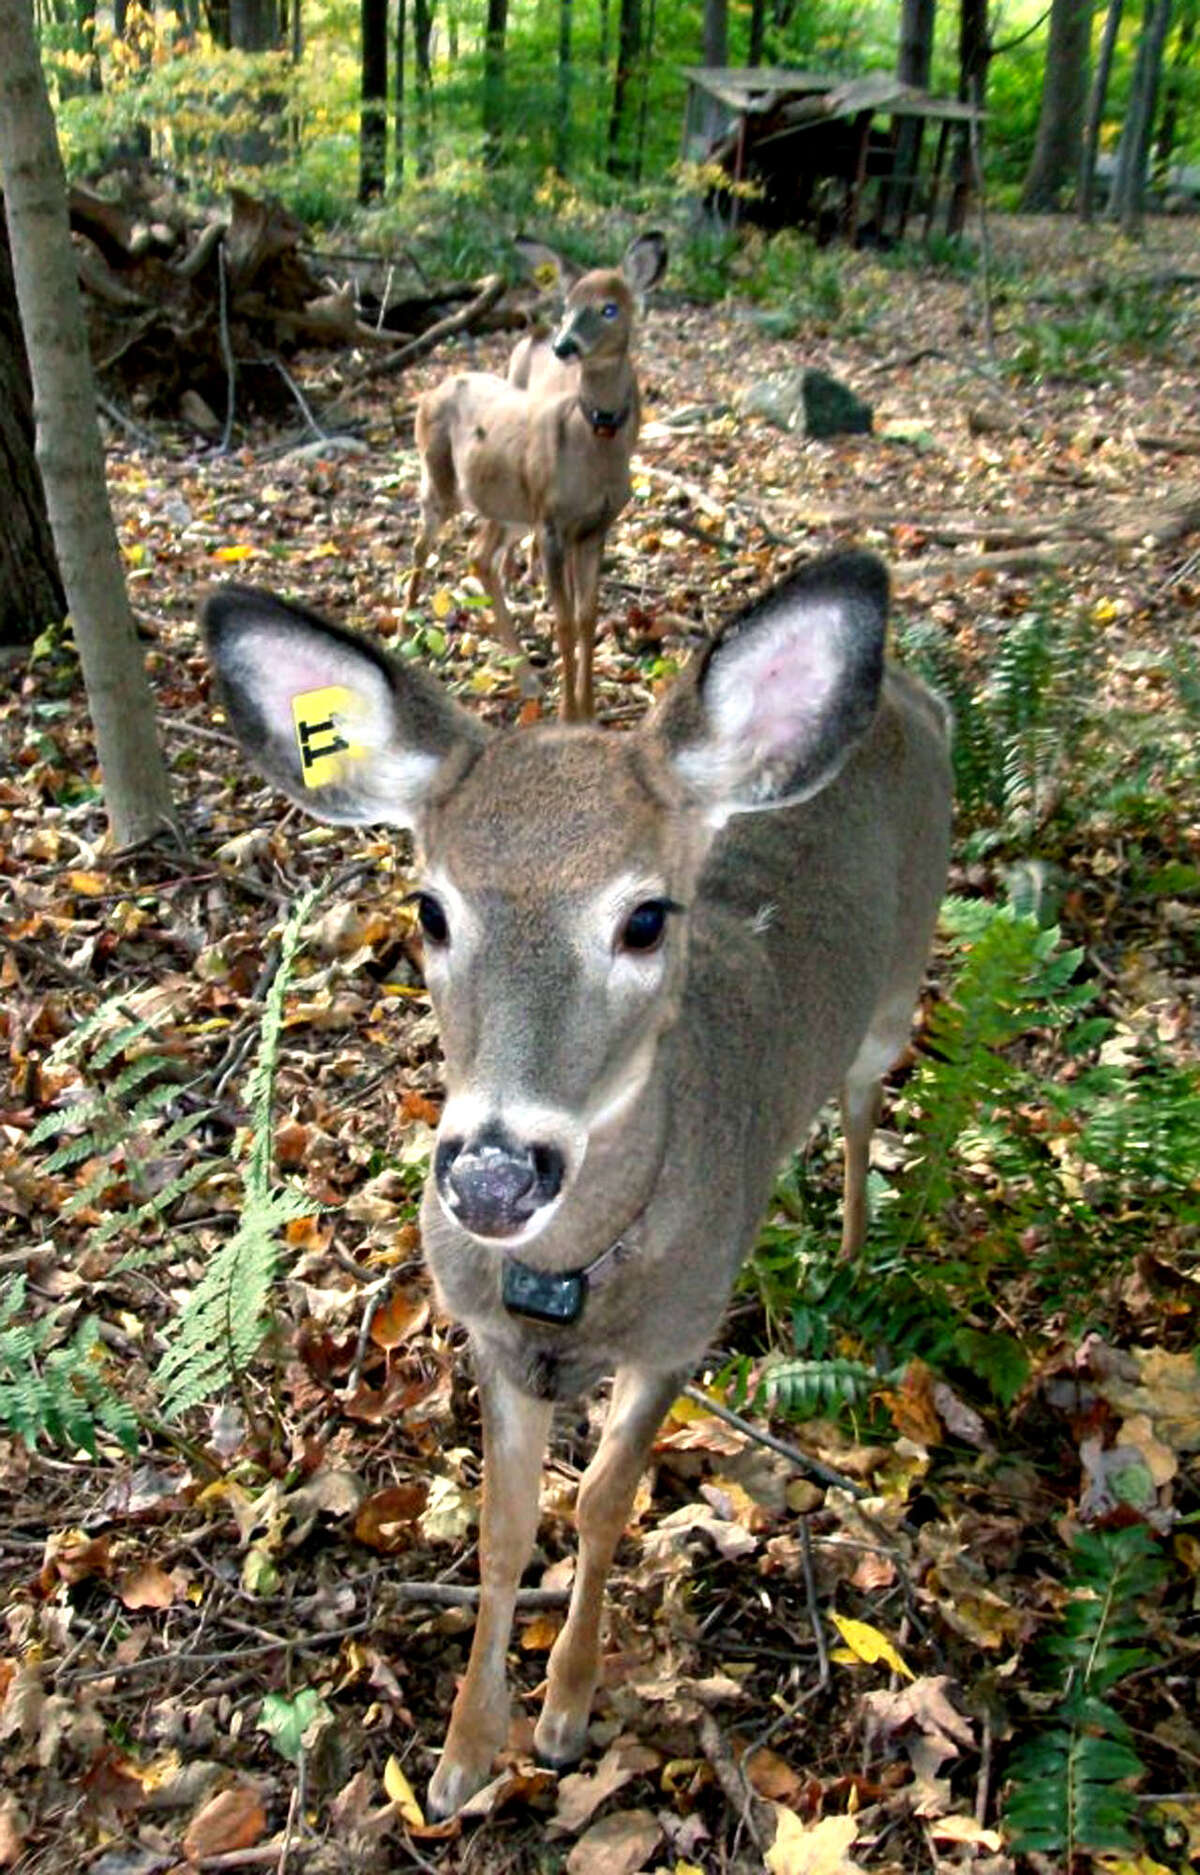 Back to nature SPECTRUM/Wildlife-Line in Sherman rehabilitates and releases orphaned or injured wildlife. Here are some of the deer thriving after rehabilitation and release. Courtesy of Wildlife-Line